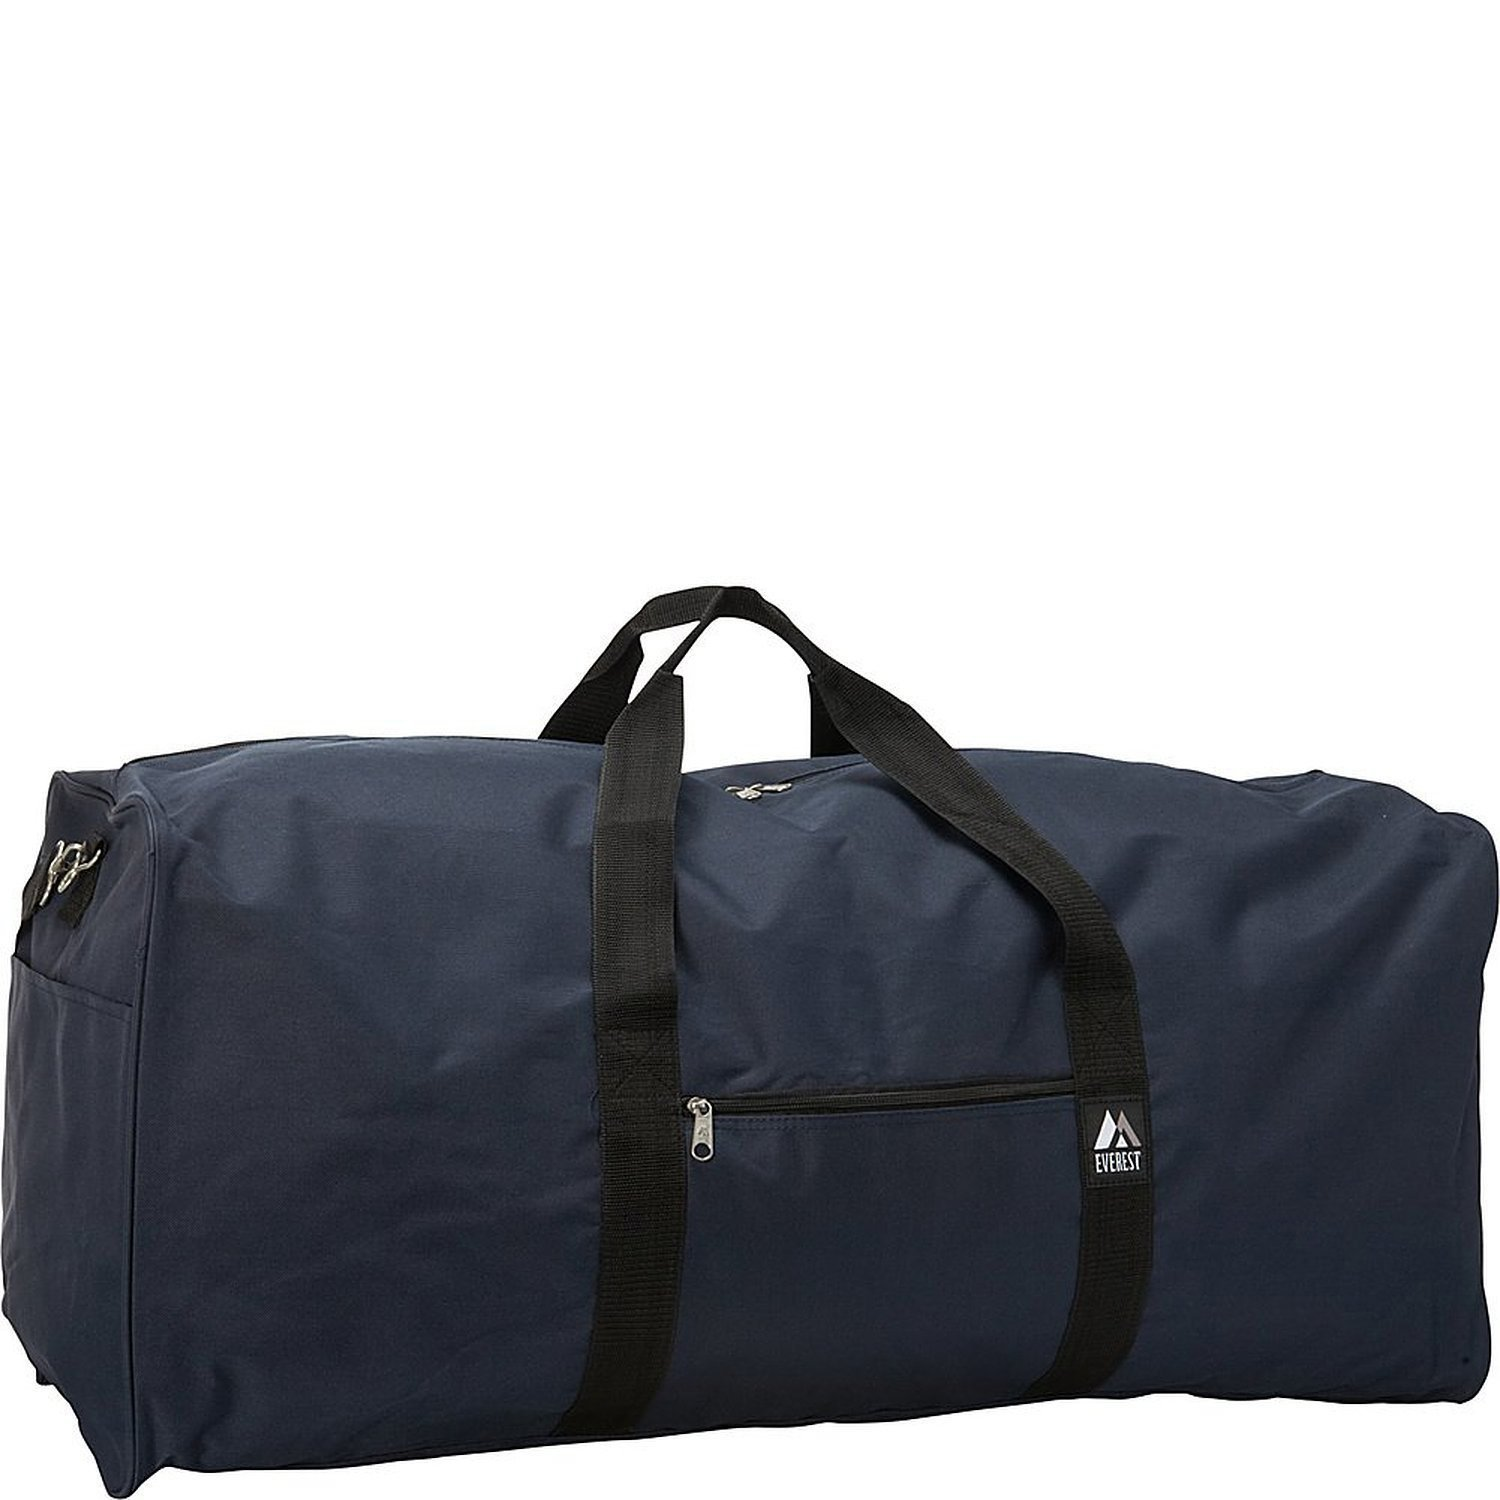 20 Pieces Case Pack Everest 36-inch Duffel Bags (One Size, Navy)